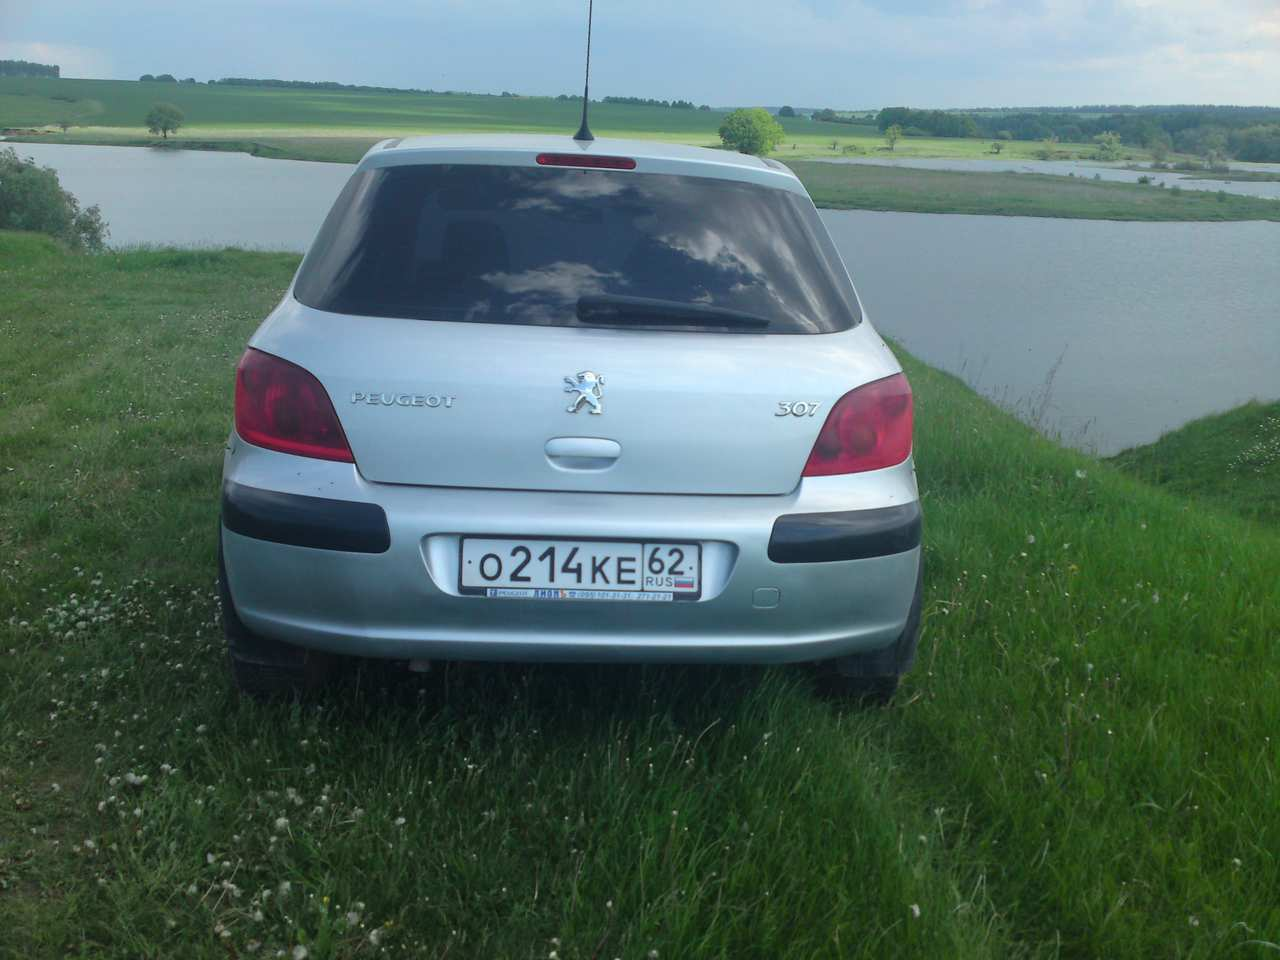 2002 peugeot 307 for sale, gasoline, ff, automatic for sale